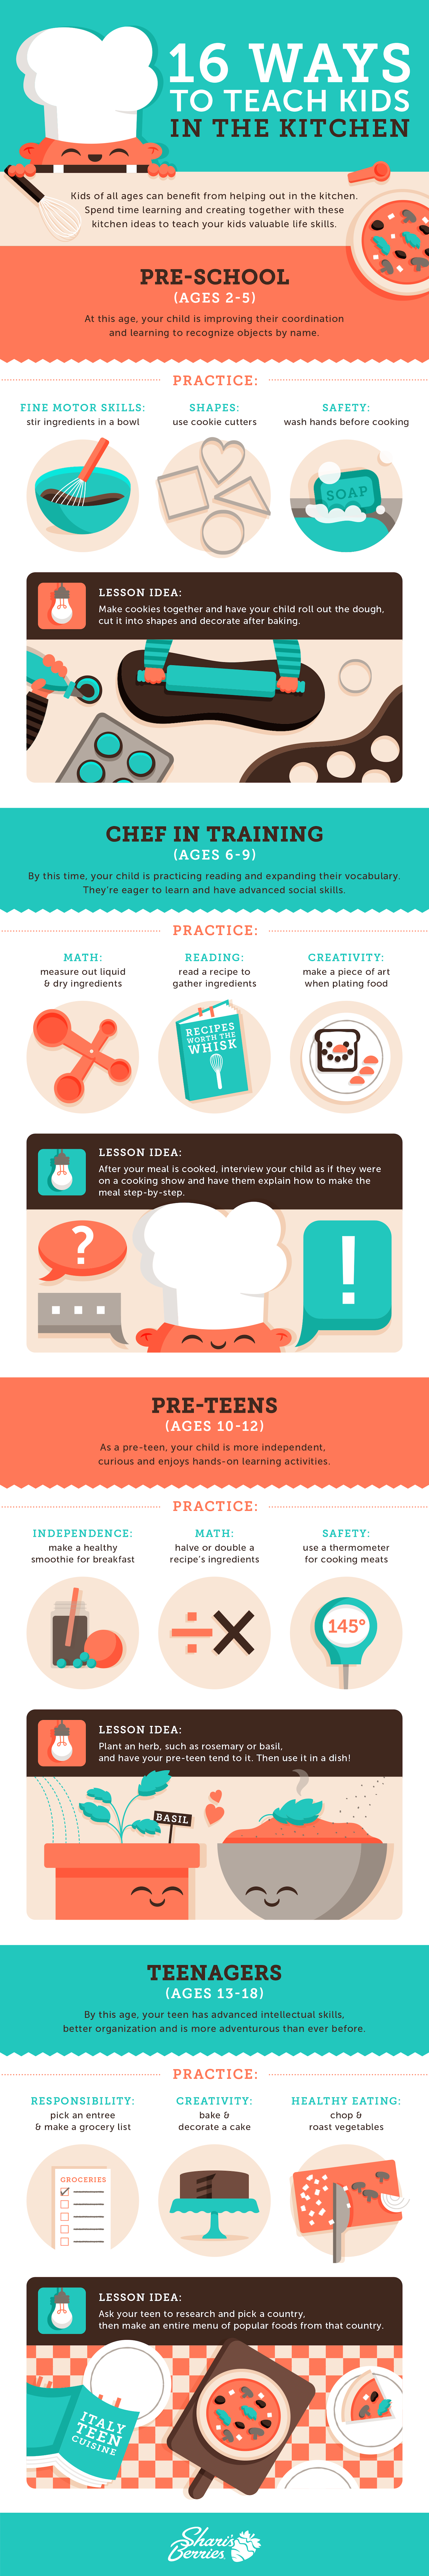 kids in the kitchen infographic